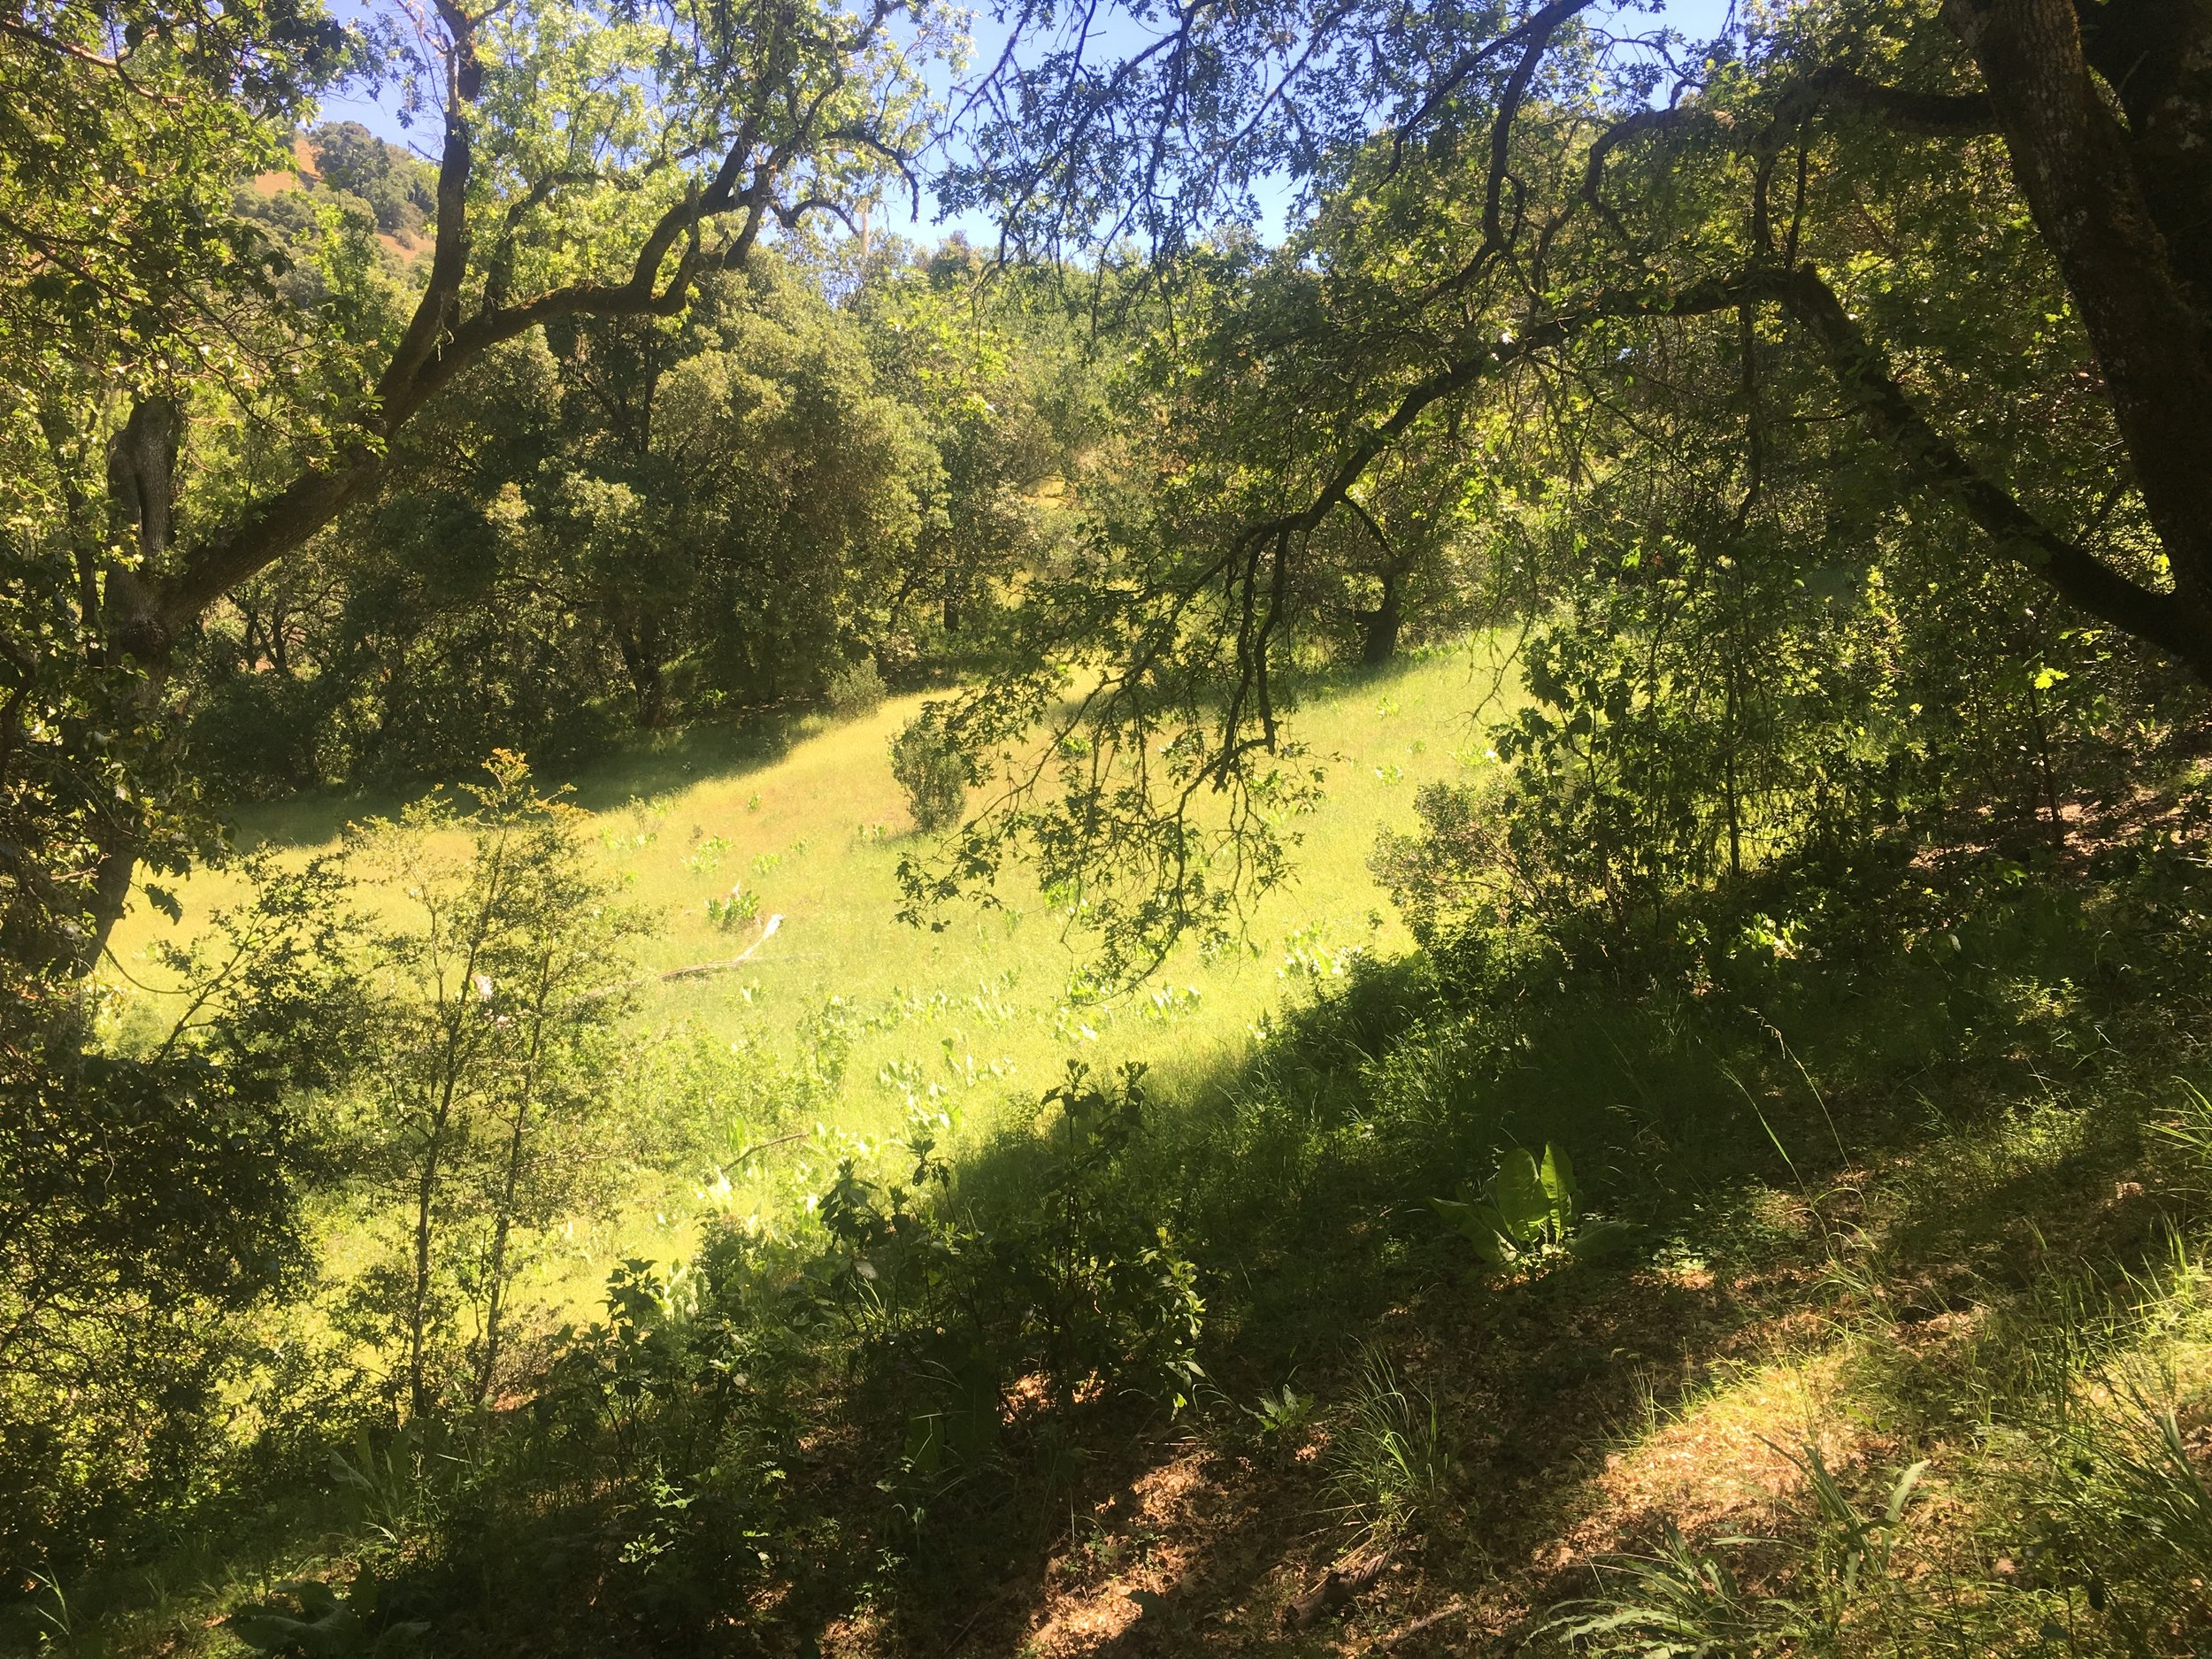 Sunny meadow seen through trees on 40 acre parcel, Yorkville, CA